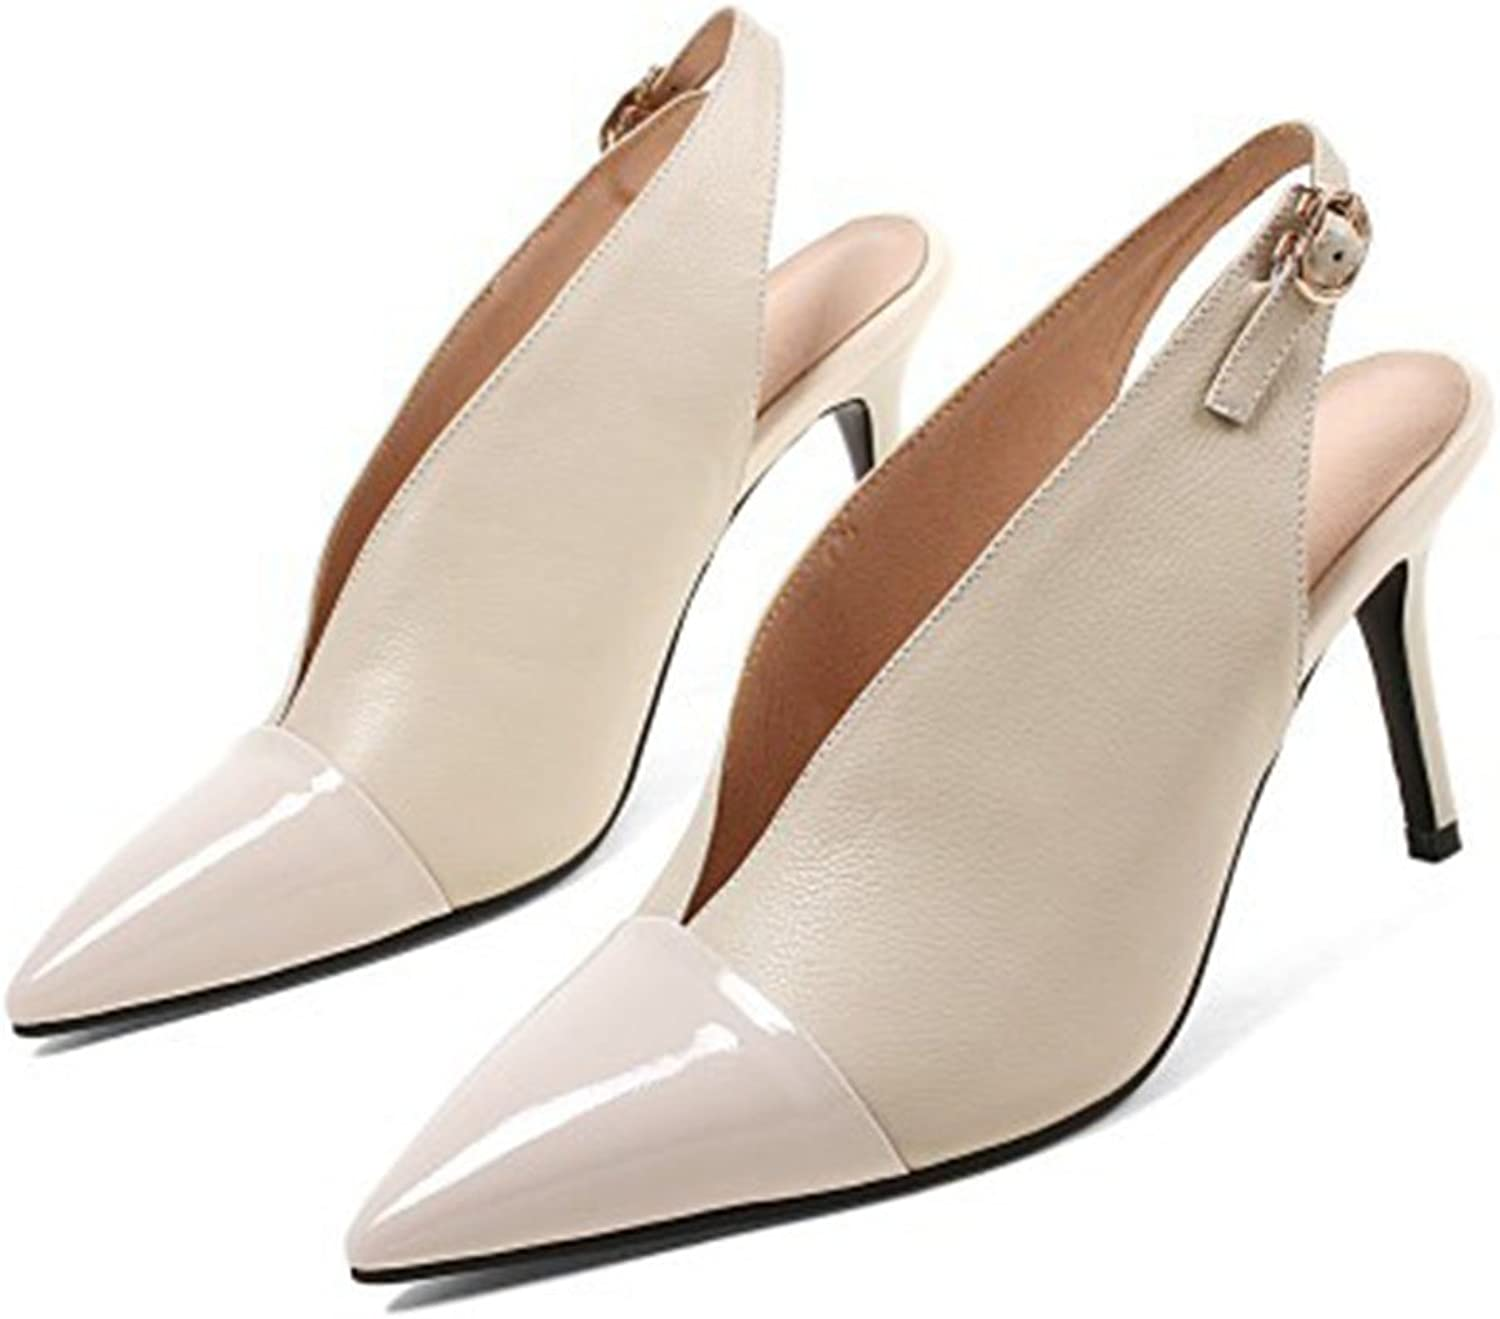 LZWSMGS Ms. Women Pointed Out Leather Business shoes with High Heels High Heel Sandals Fashion Court shoes Work Casual Party Party Ladies Sandals (color   Beige, Size   5.5 US)